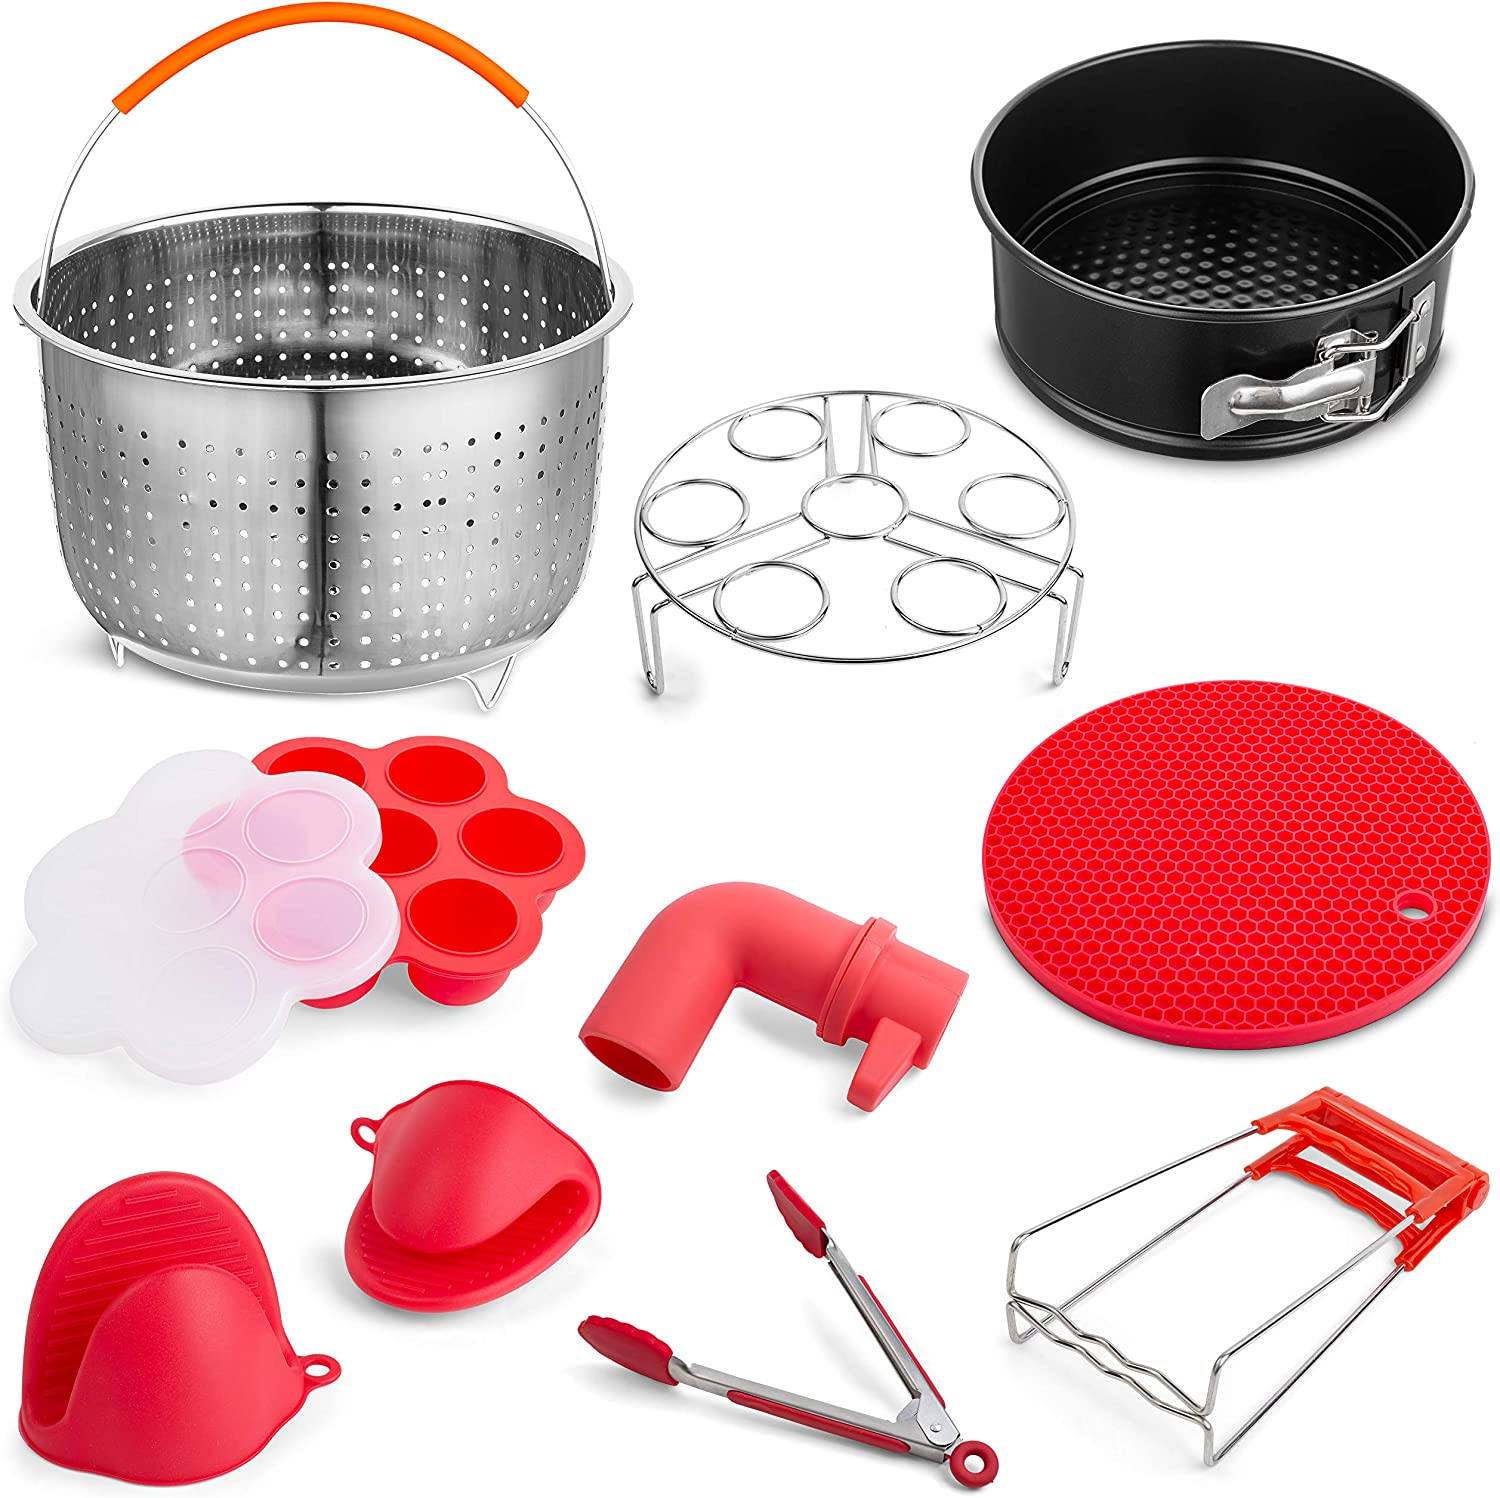 Instant Pot Accessories Set 9 Pcs — Stainless Steel Steamer Basket, Silicone Egg Molds, Egg Rack and More — Compatible With 5, 6, 8 QT Instant Pot